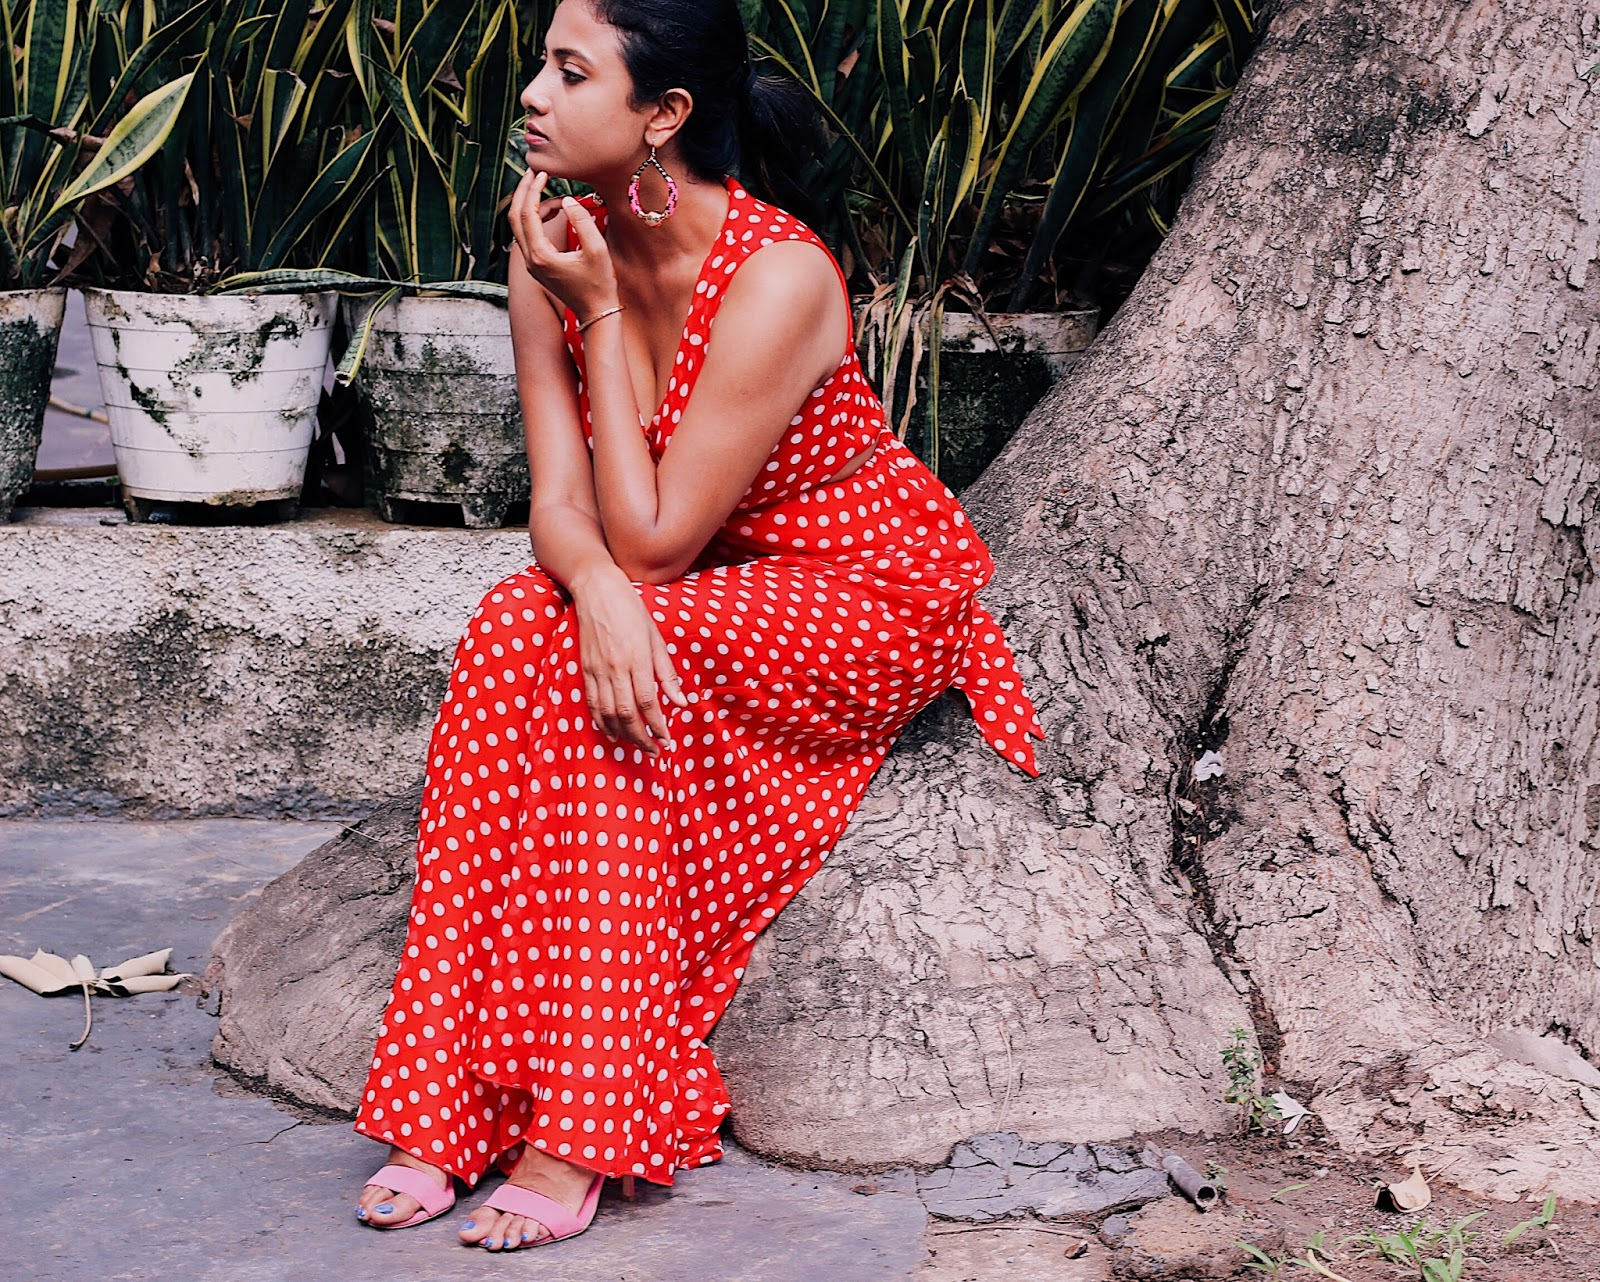 hottest colour combo, freshest print of the season, indian blog, indian blogger, top indian blog, indian luxury blog, uk blog, british blog, london blog, delhi blogger, delhi travel blogger, indian travel blog, 70s style, retro outfit, london street style, polka dots, red polka dot dress, boohoo bloggerxdotm, boohoo blogger x dress of the month, red and pink, how to wear red and pink, red and pink outfit idea, style a maxi, style polka dots, fresh summer outfit idea, how to wear red,